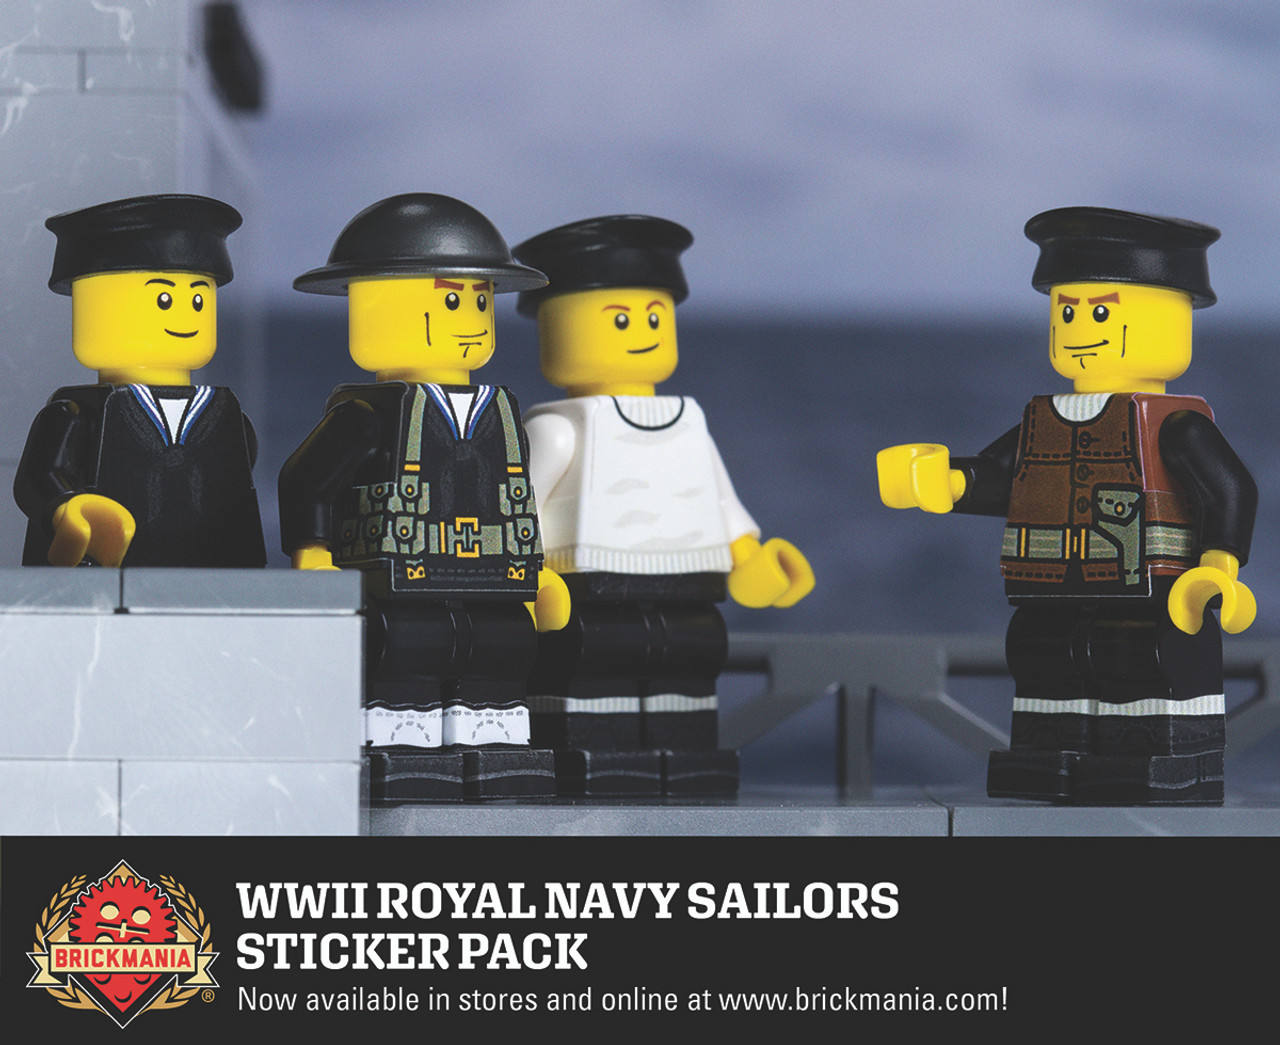 WWII Royal Navy Sailors Sticker Pack